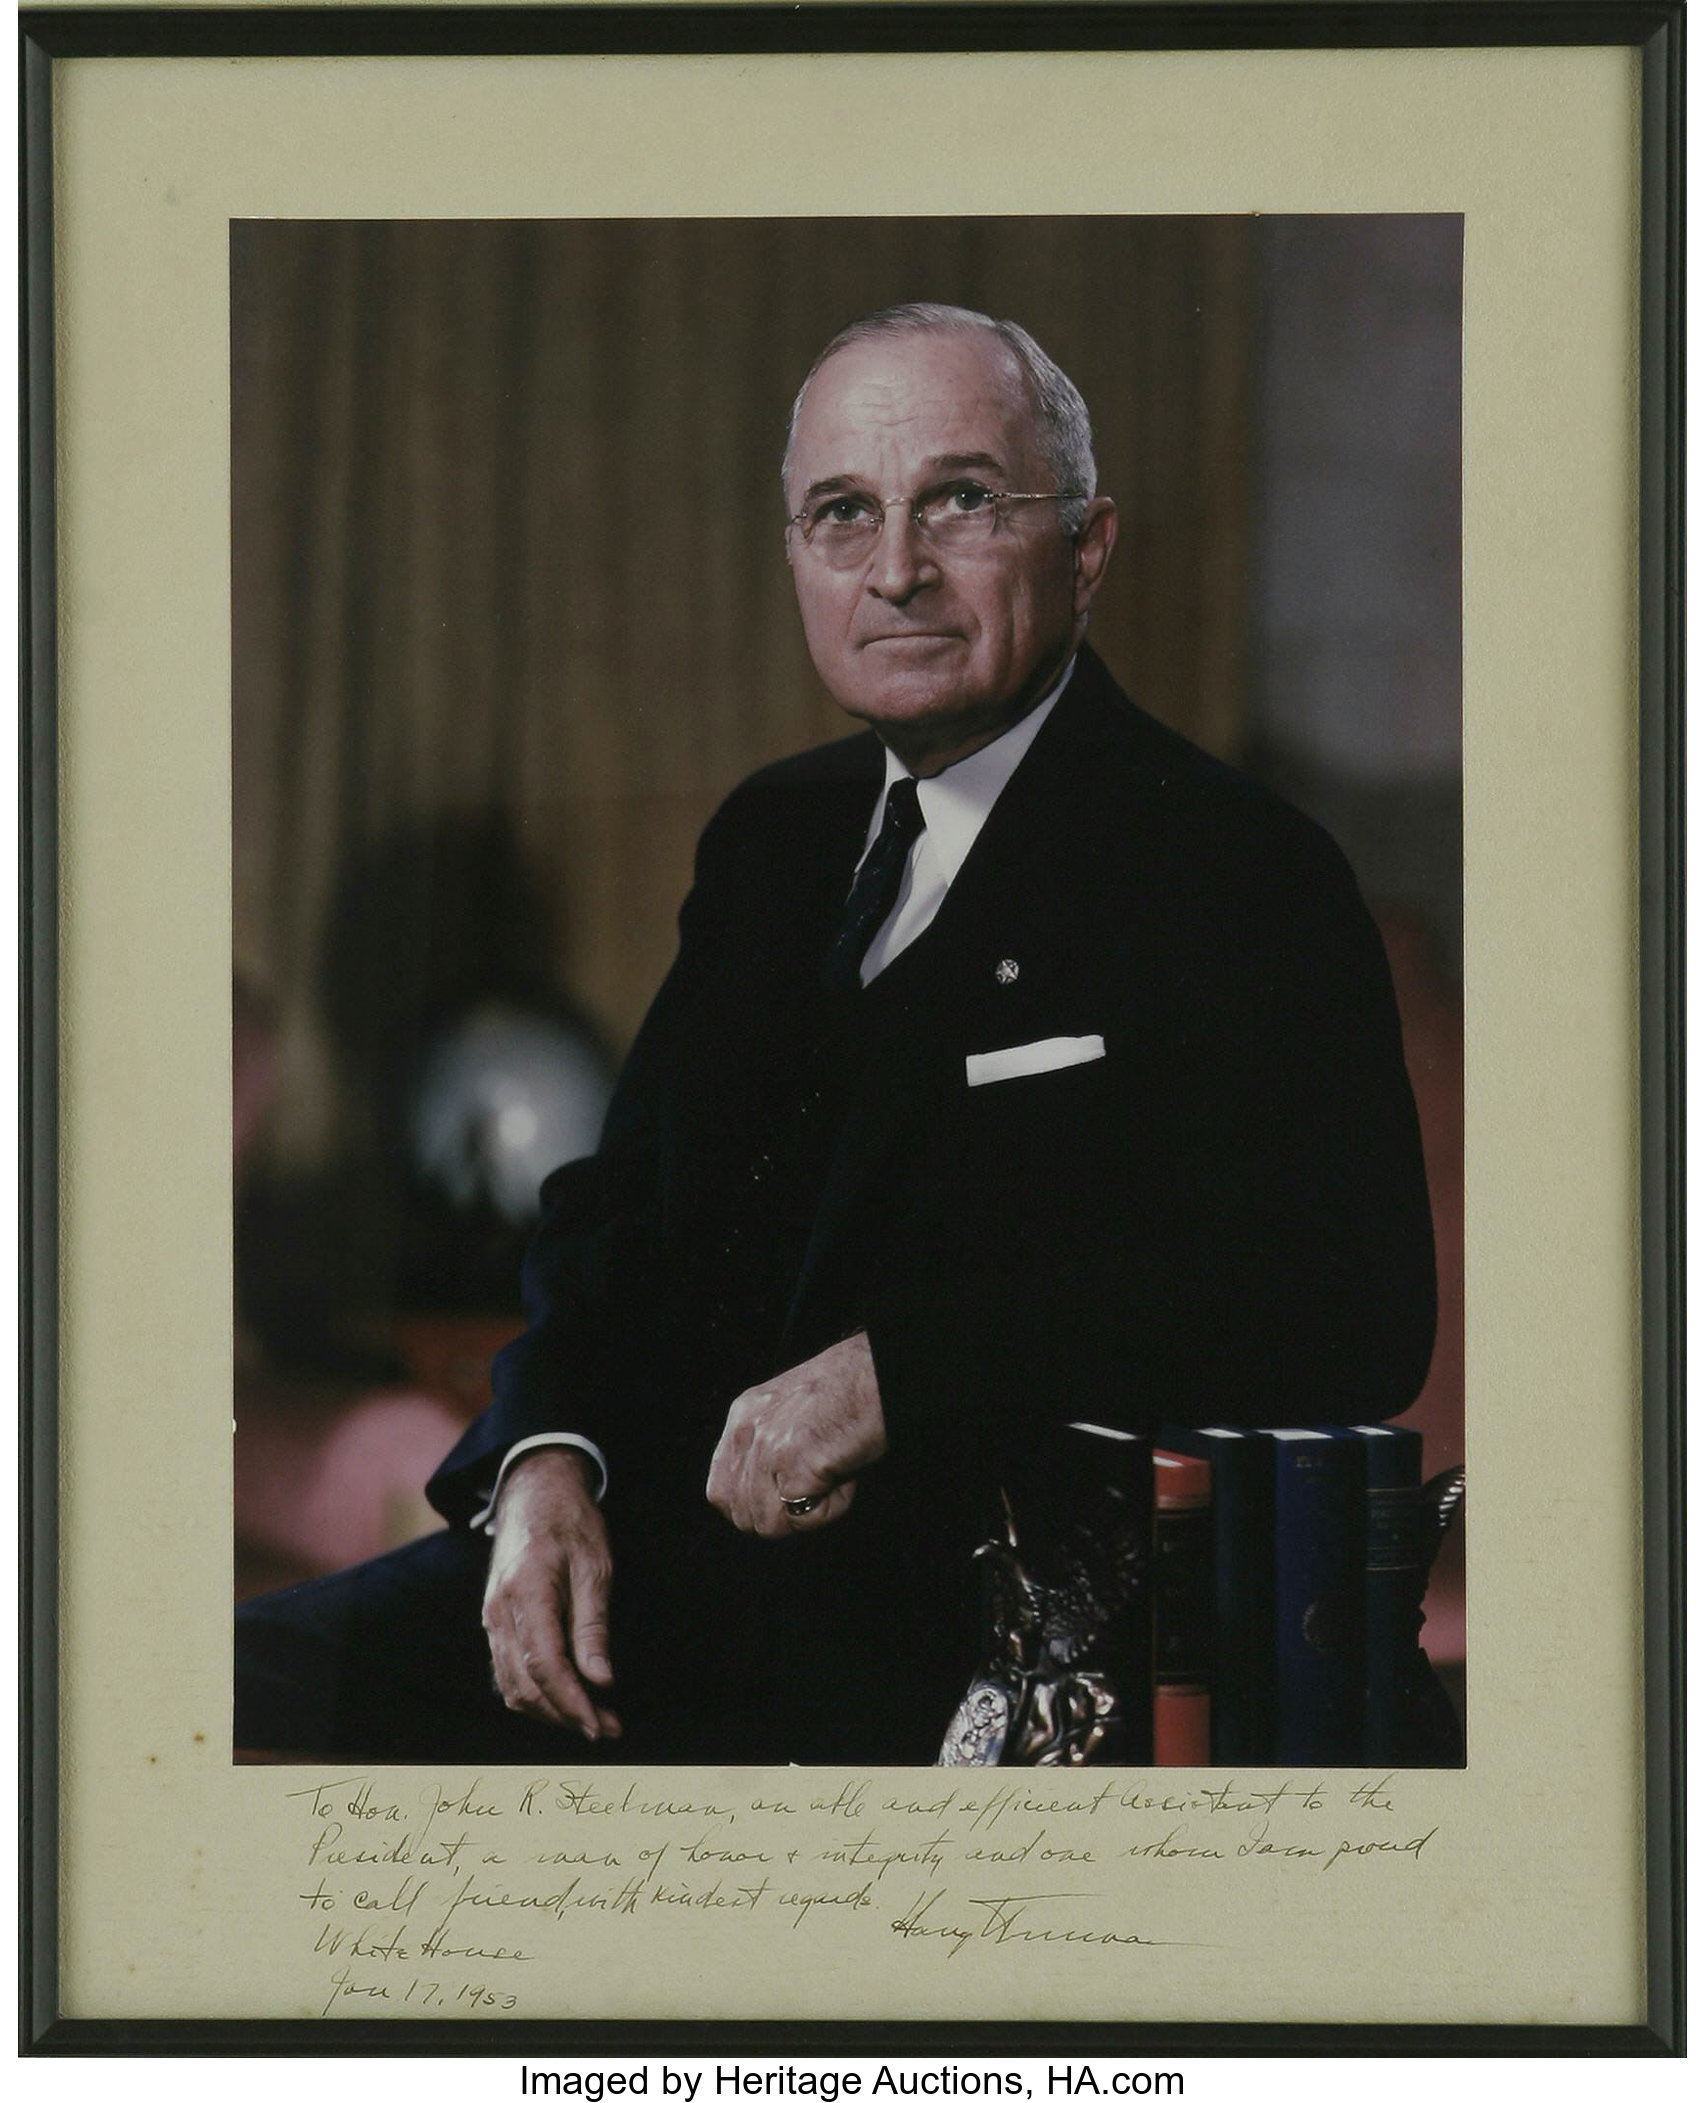 Harry truman signed and inscribed color photograph a superb lot 26248 heritage auctions